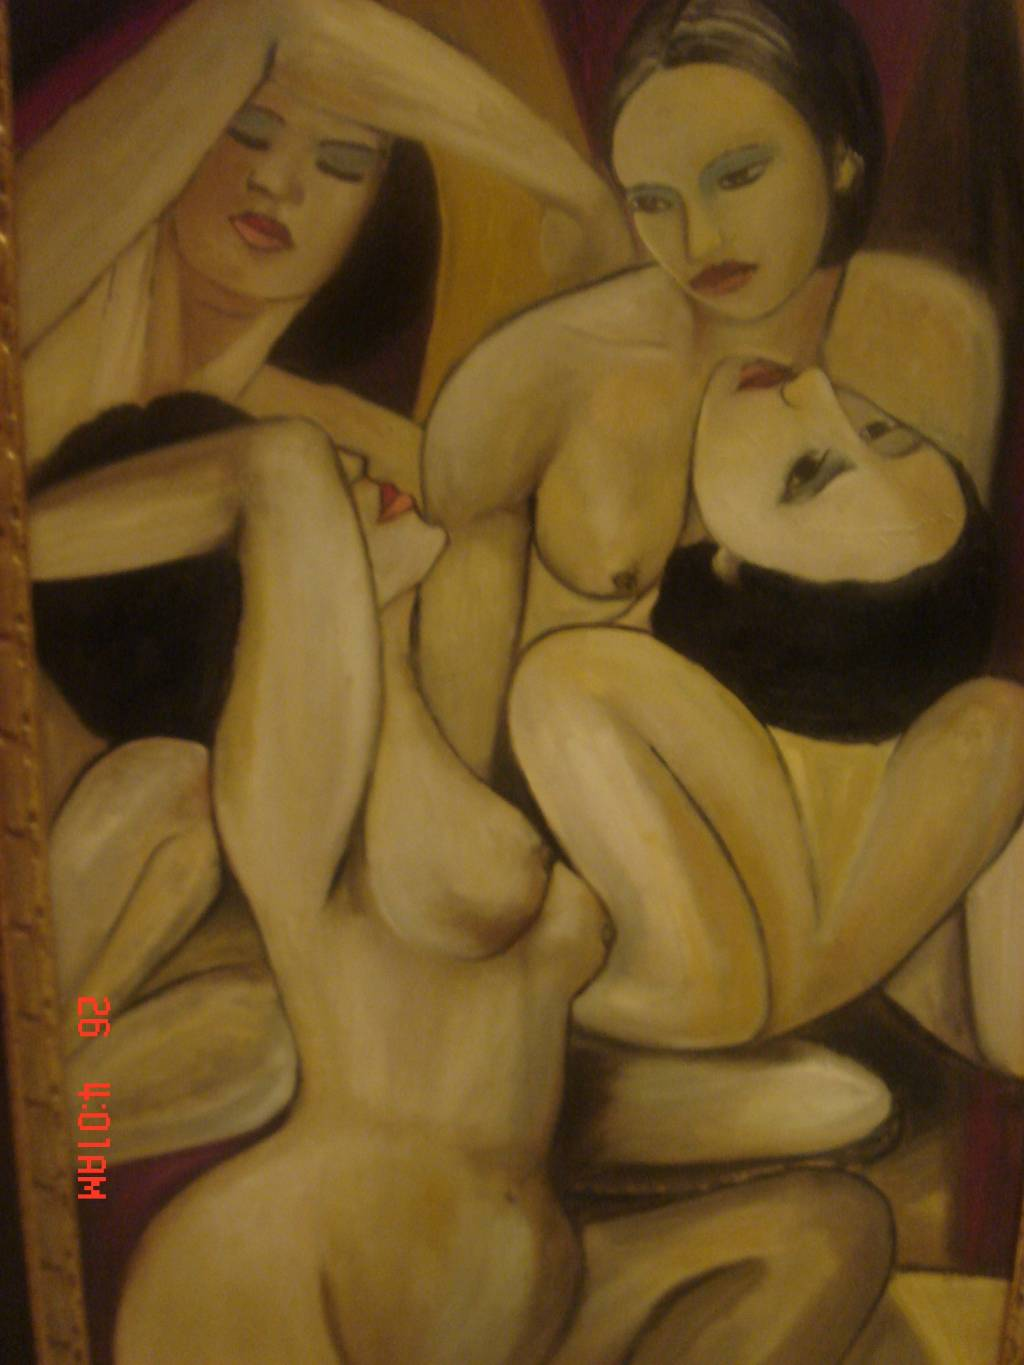 Mujeres Desnudas Porn Original Media Nude Oil